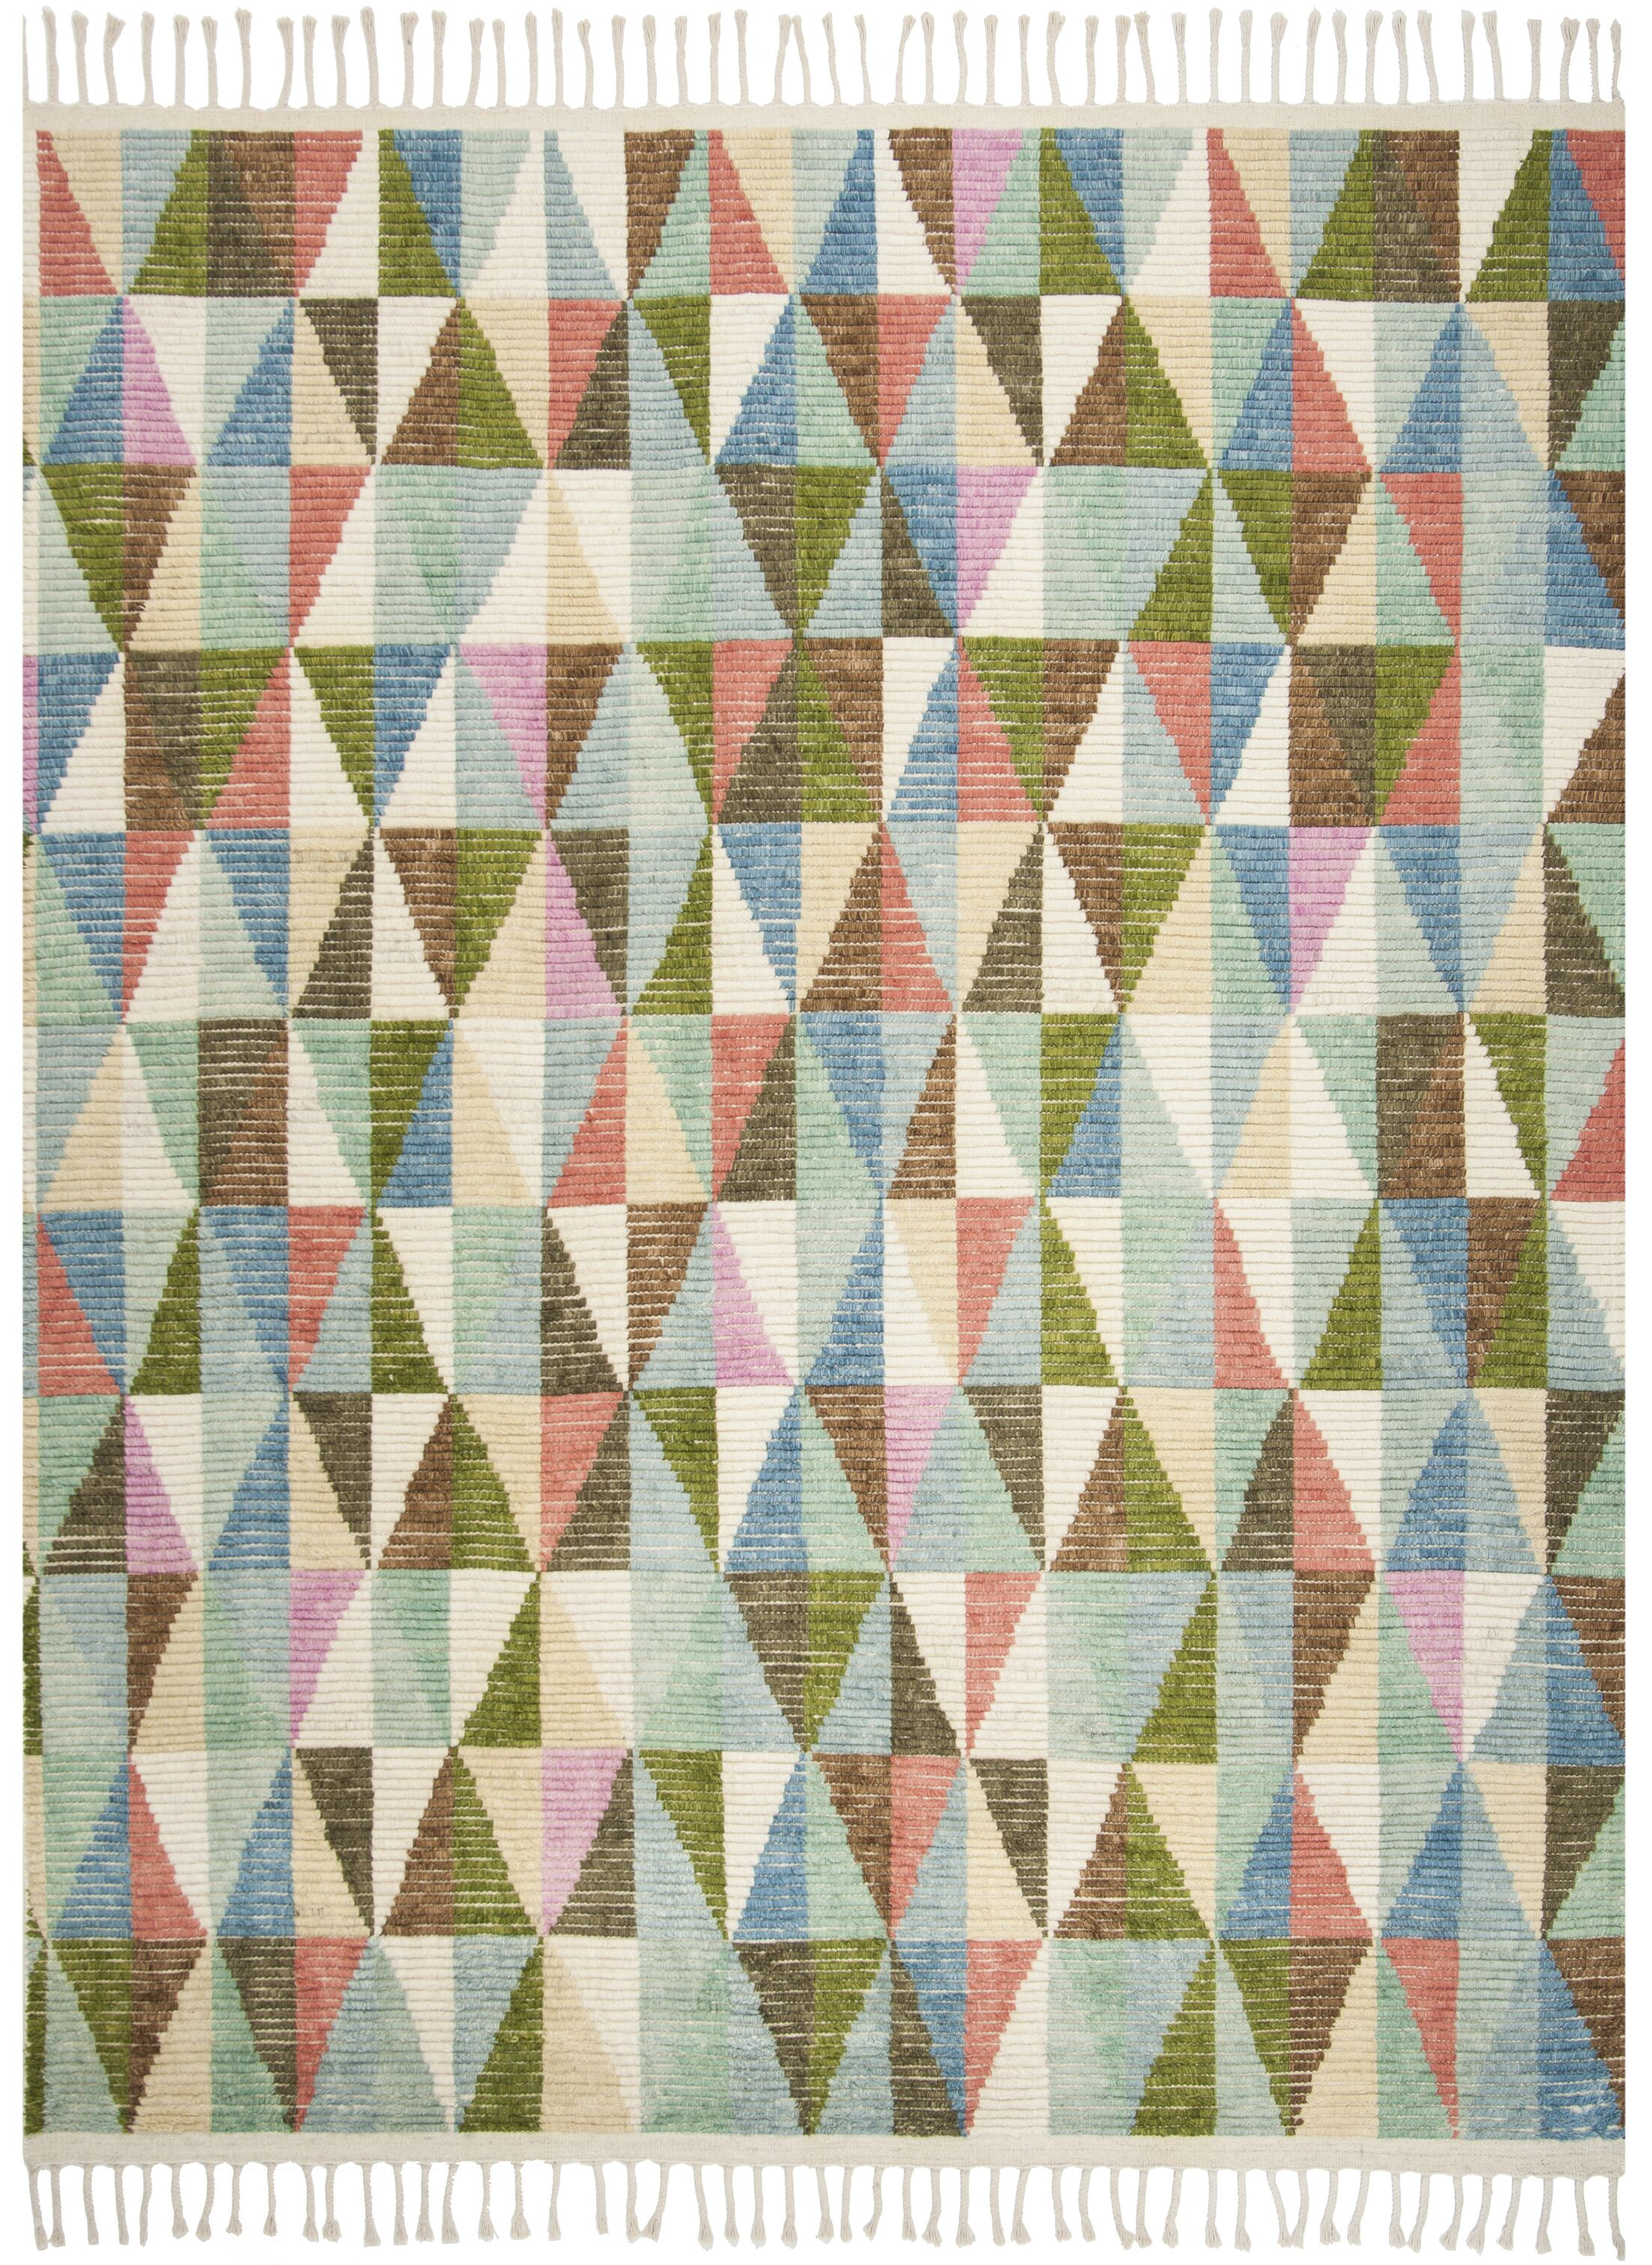 Lohan Hand-Knotted Green/Blue Area Rug Rug Size: Rectangle 8' x 10'